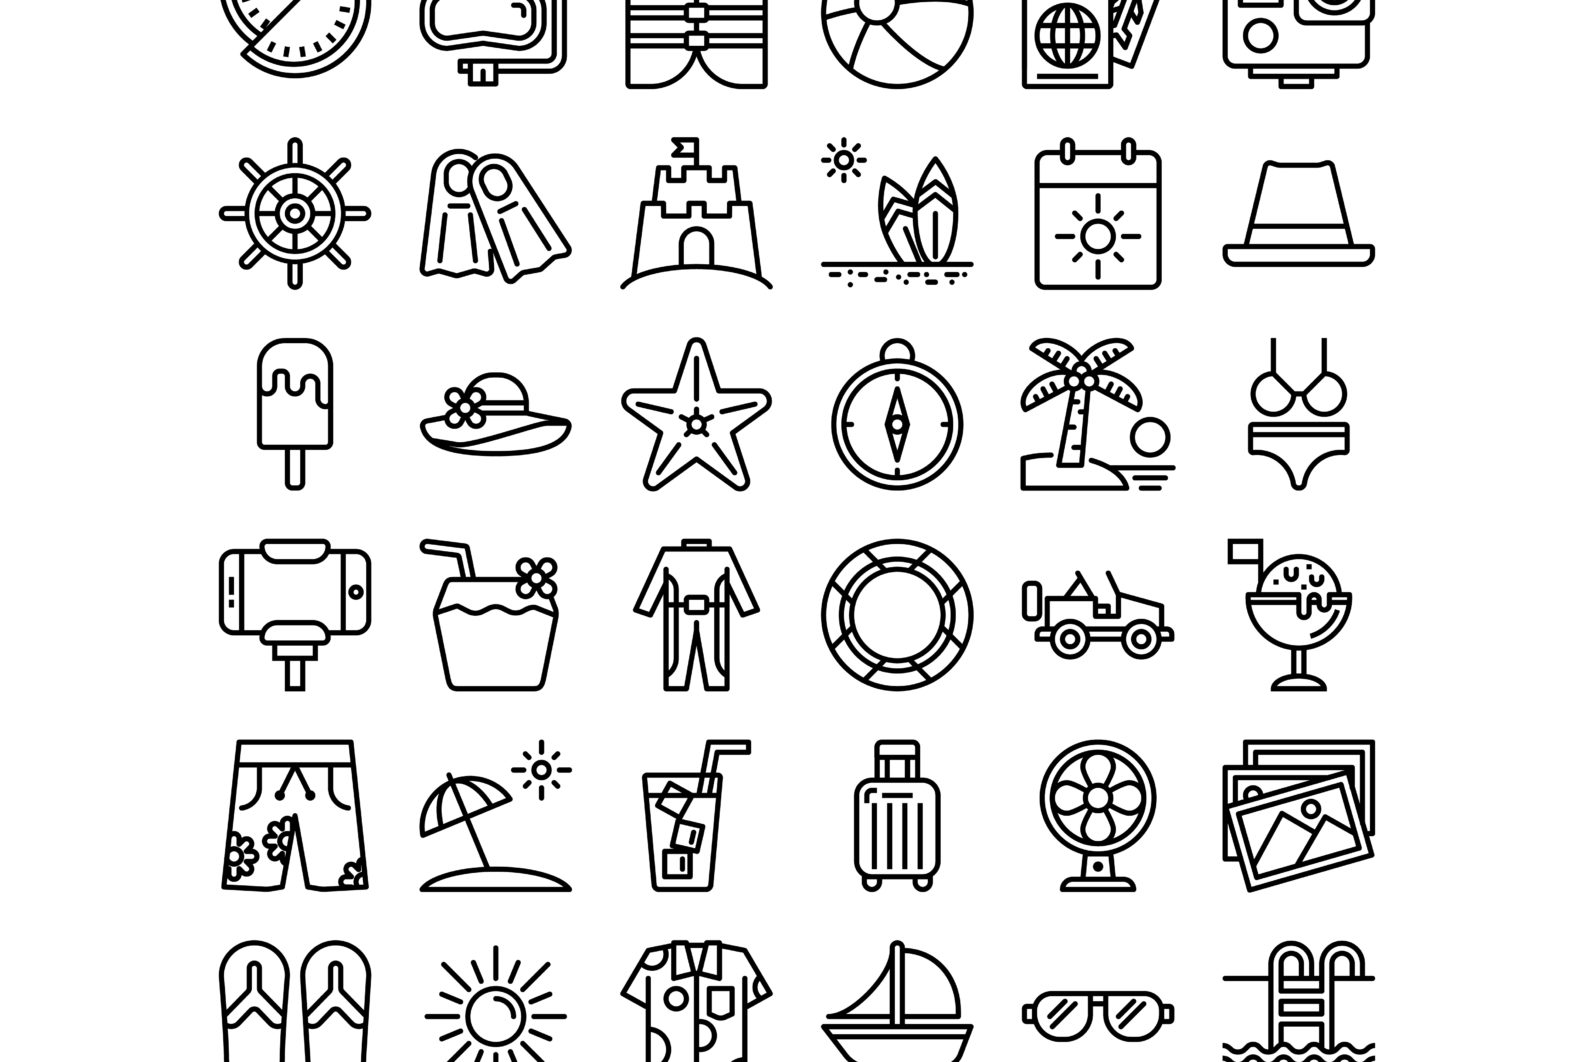 36 Summer Icons - Preview 04 1 scaled -